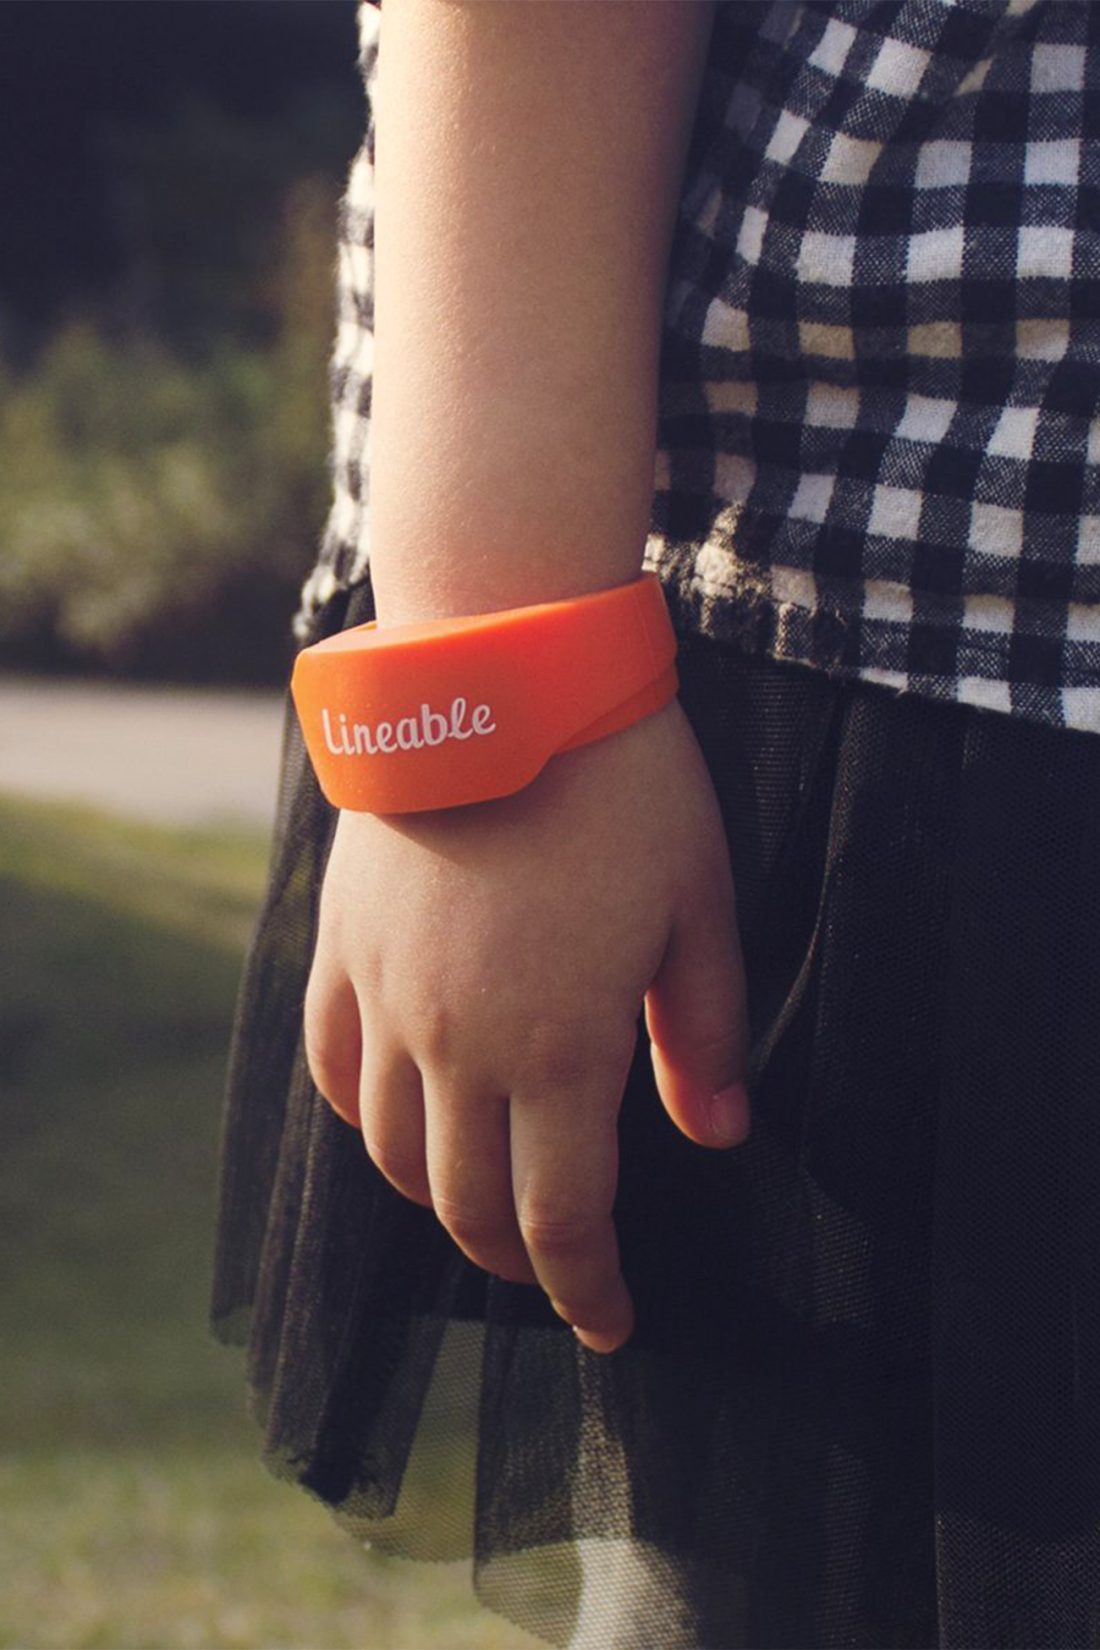 Best wearables for kids: Lineable